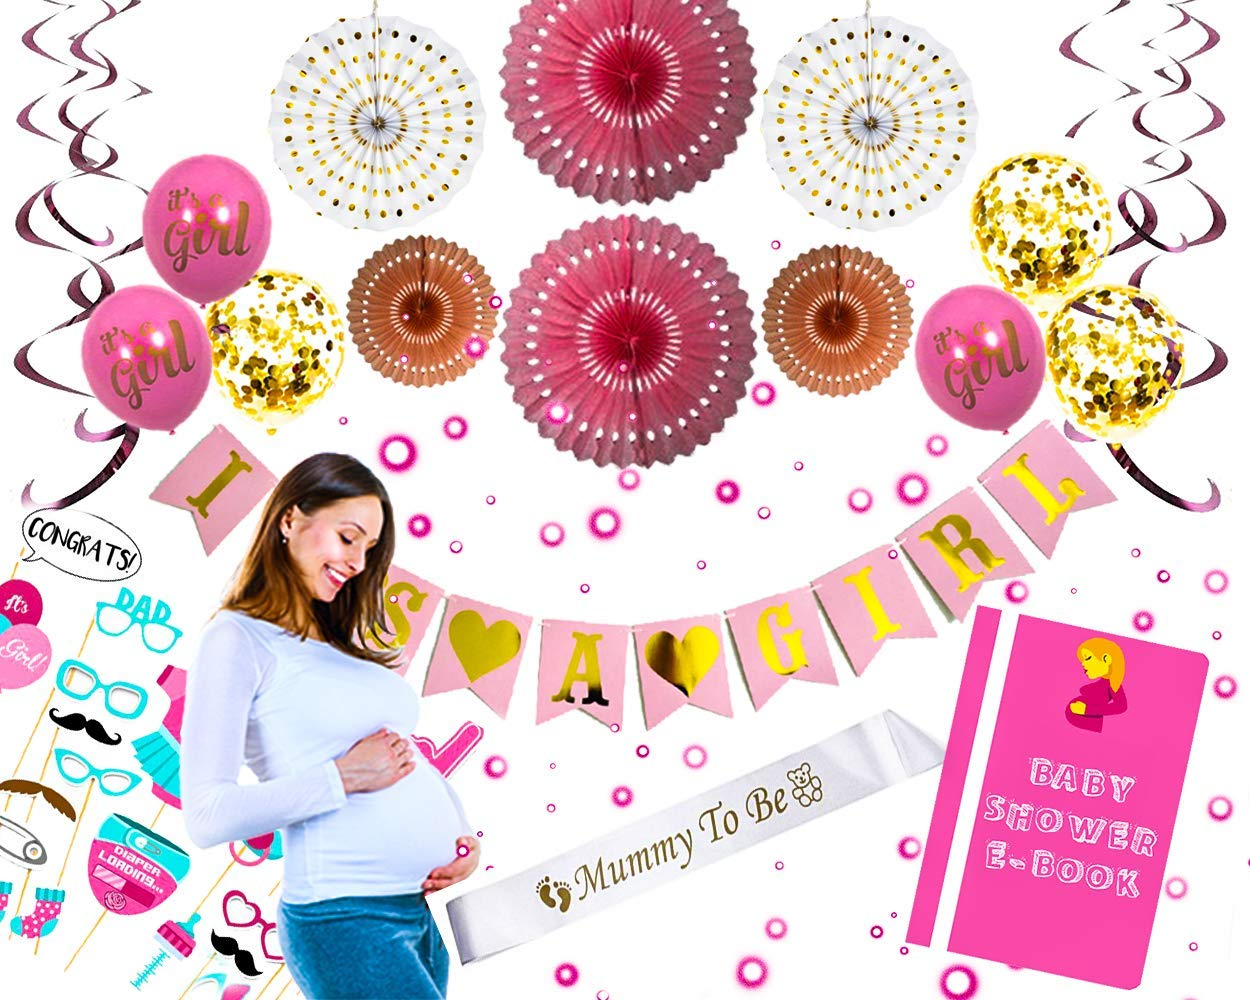 Baby Shower Decorations for GIRL/BOY (46 Pink Premium Piece Set) | EASY To Assemble | Photo Props | Stunning Pink, Gold & White Pom Poms | Swirls | Mommy To Be Sash | High Quality | Bonus E-Book